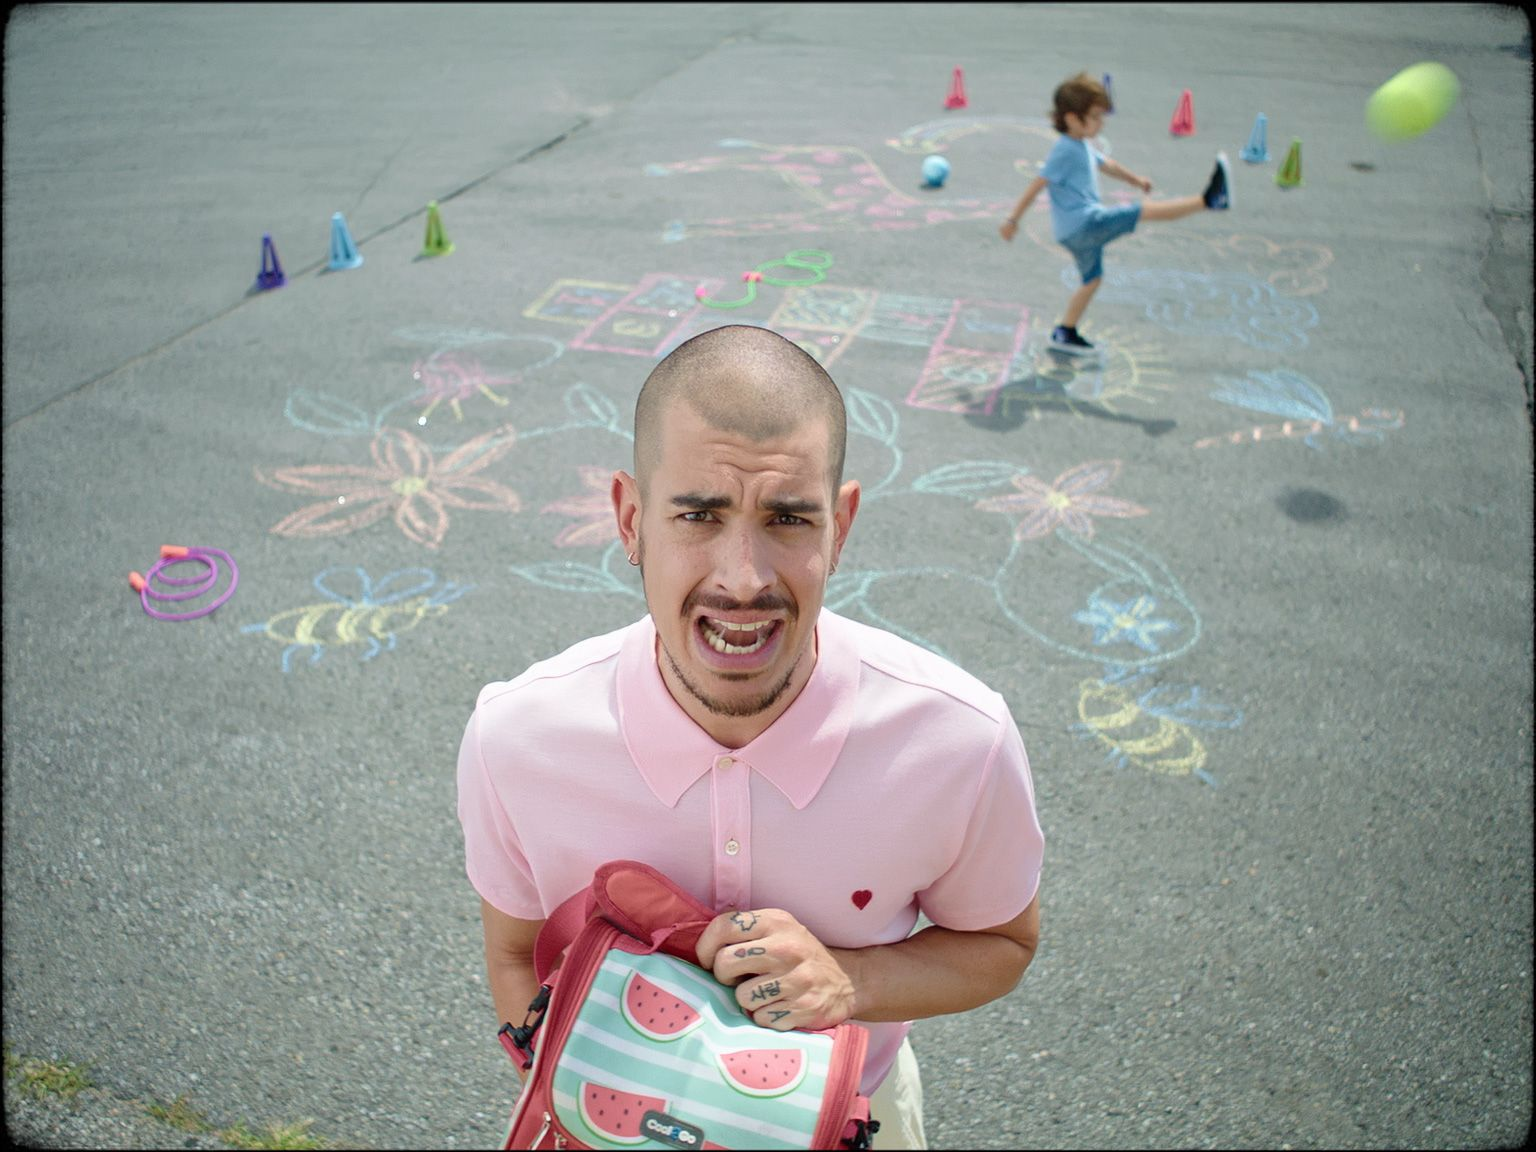 rapper Koriass wearing pink shirt holding strawberry themed backpack on school grounds in music video 5 à 7 filmed by Vincent Ruel-Cote from Les Gamins with 7ieme Ciel Records